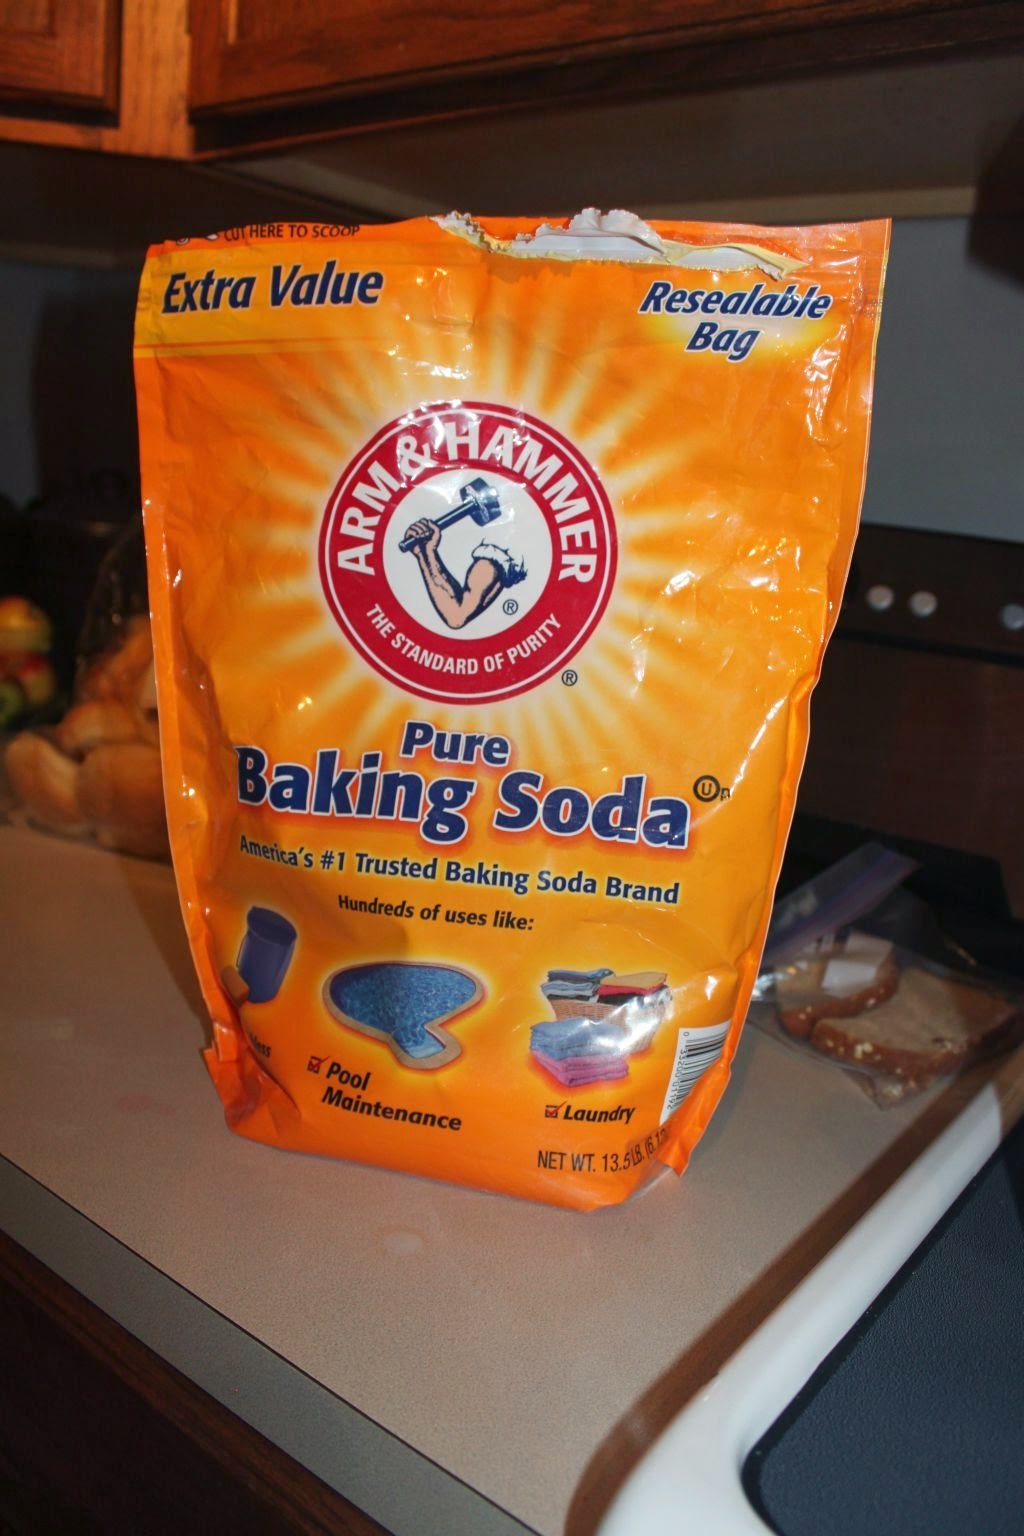 promotion - reliance baking soda case essay The art of baking something is much more complex that making something else every ingredient has to be measured exactly and on the right temperature or the outcome can be a catastrophe every ingredient has to be accounted for or it can ruin the dough making to mushy or to dry.